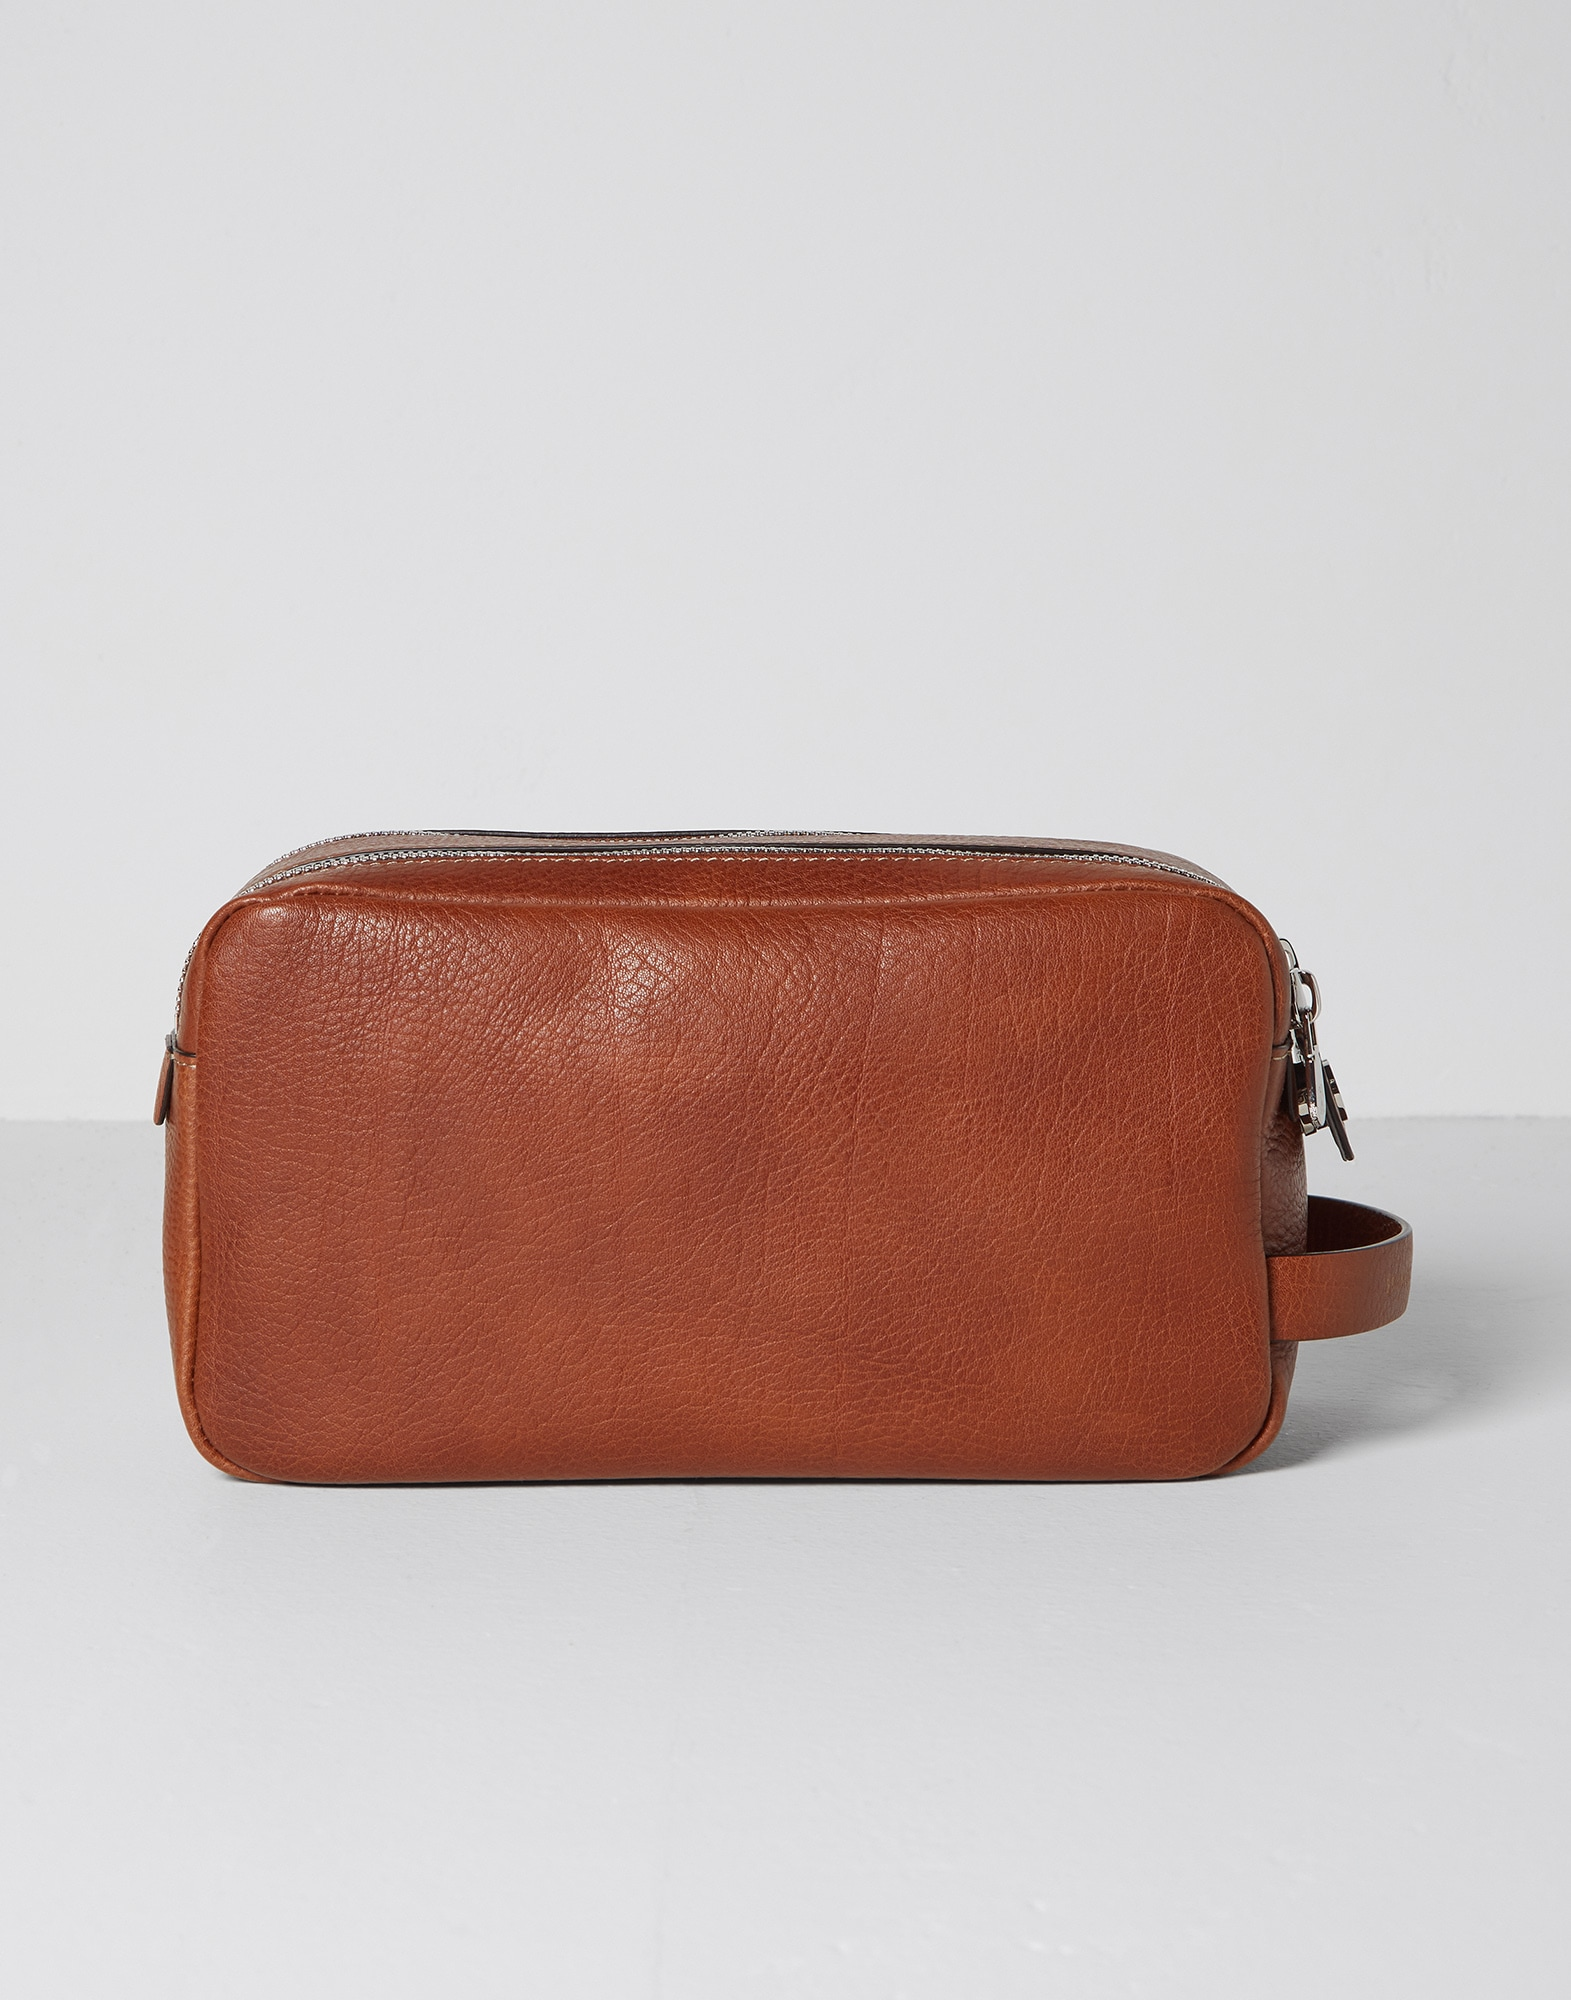 Beauty Case Rum Man 2 - Brunello Cucinelli